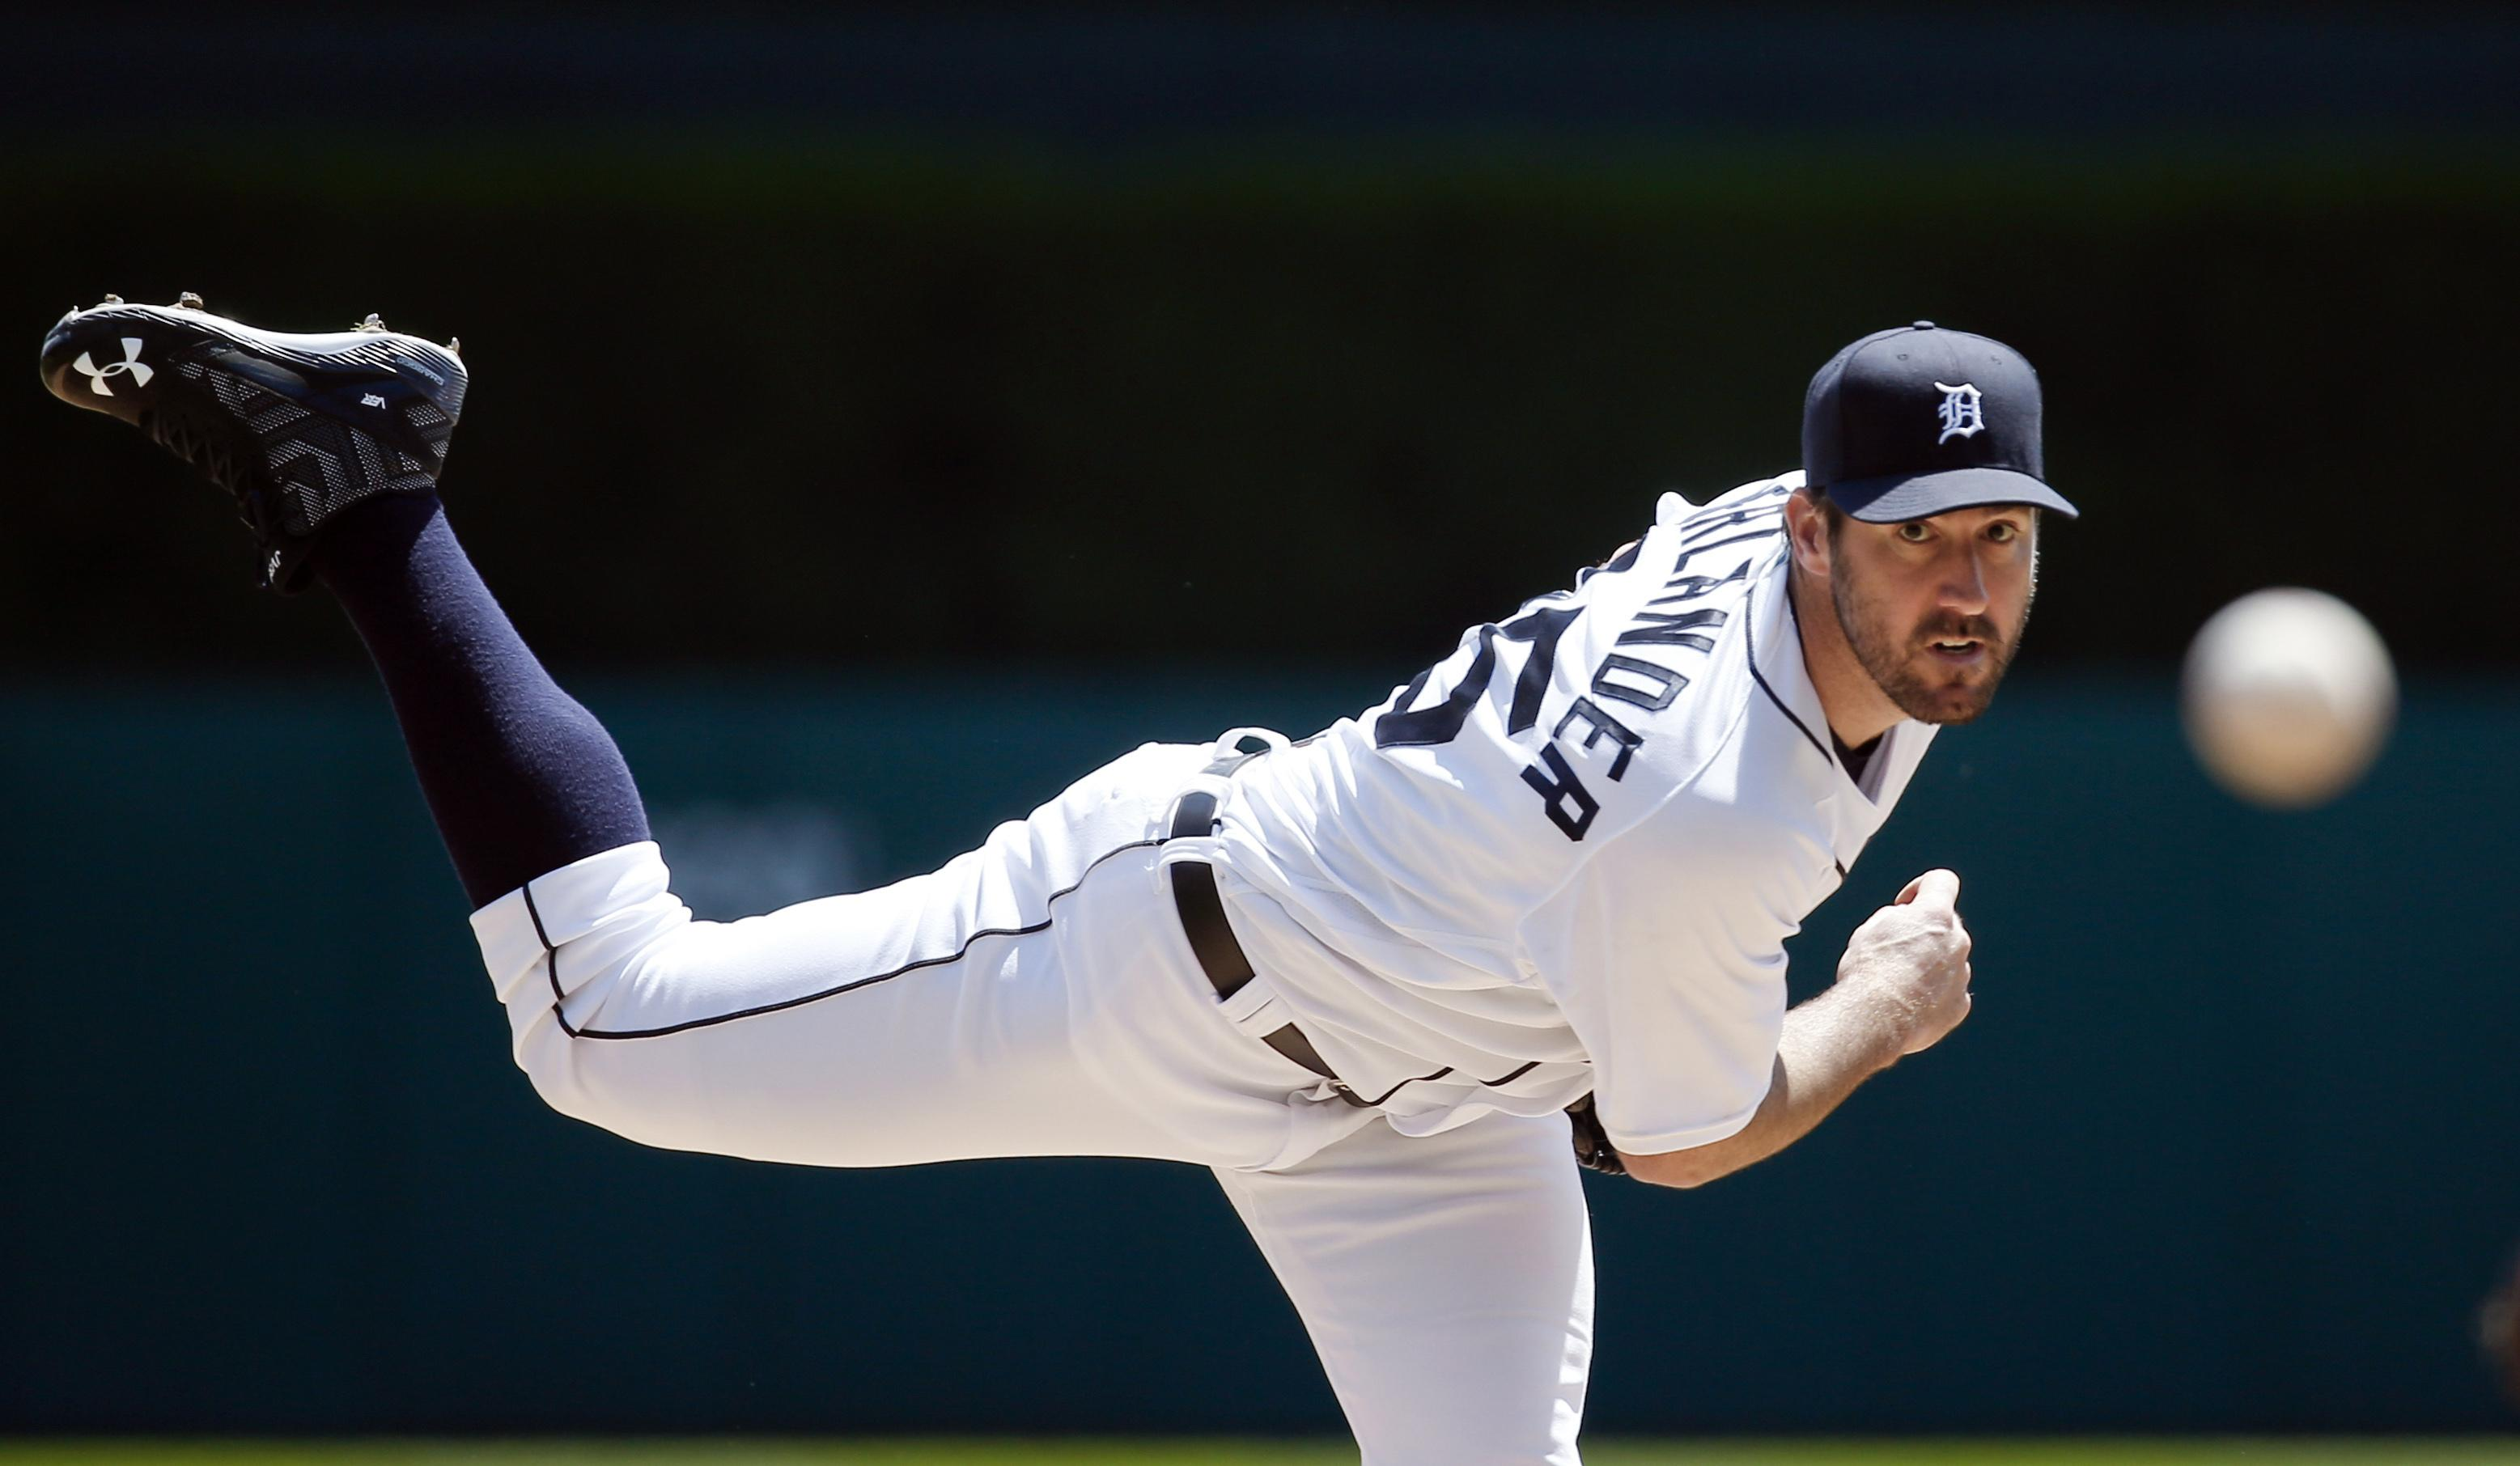 Tigers_preview_baseball_63239